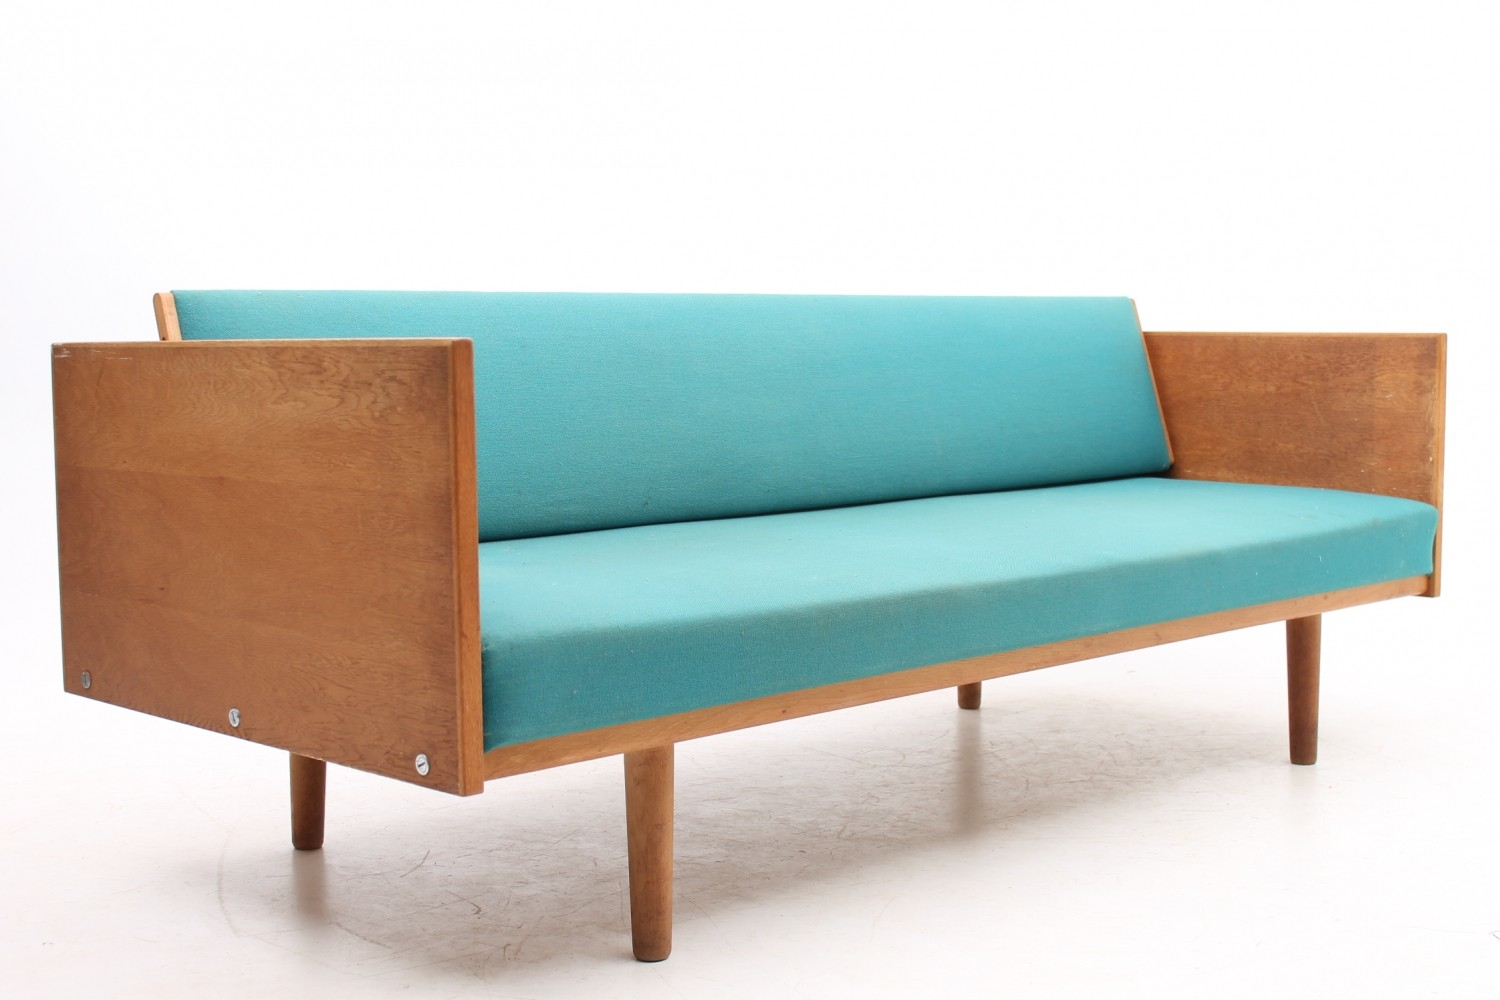 Daybed GE7 sofa by Hans Wegner for Getama, 1950s